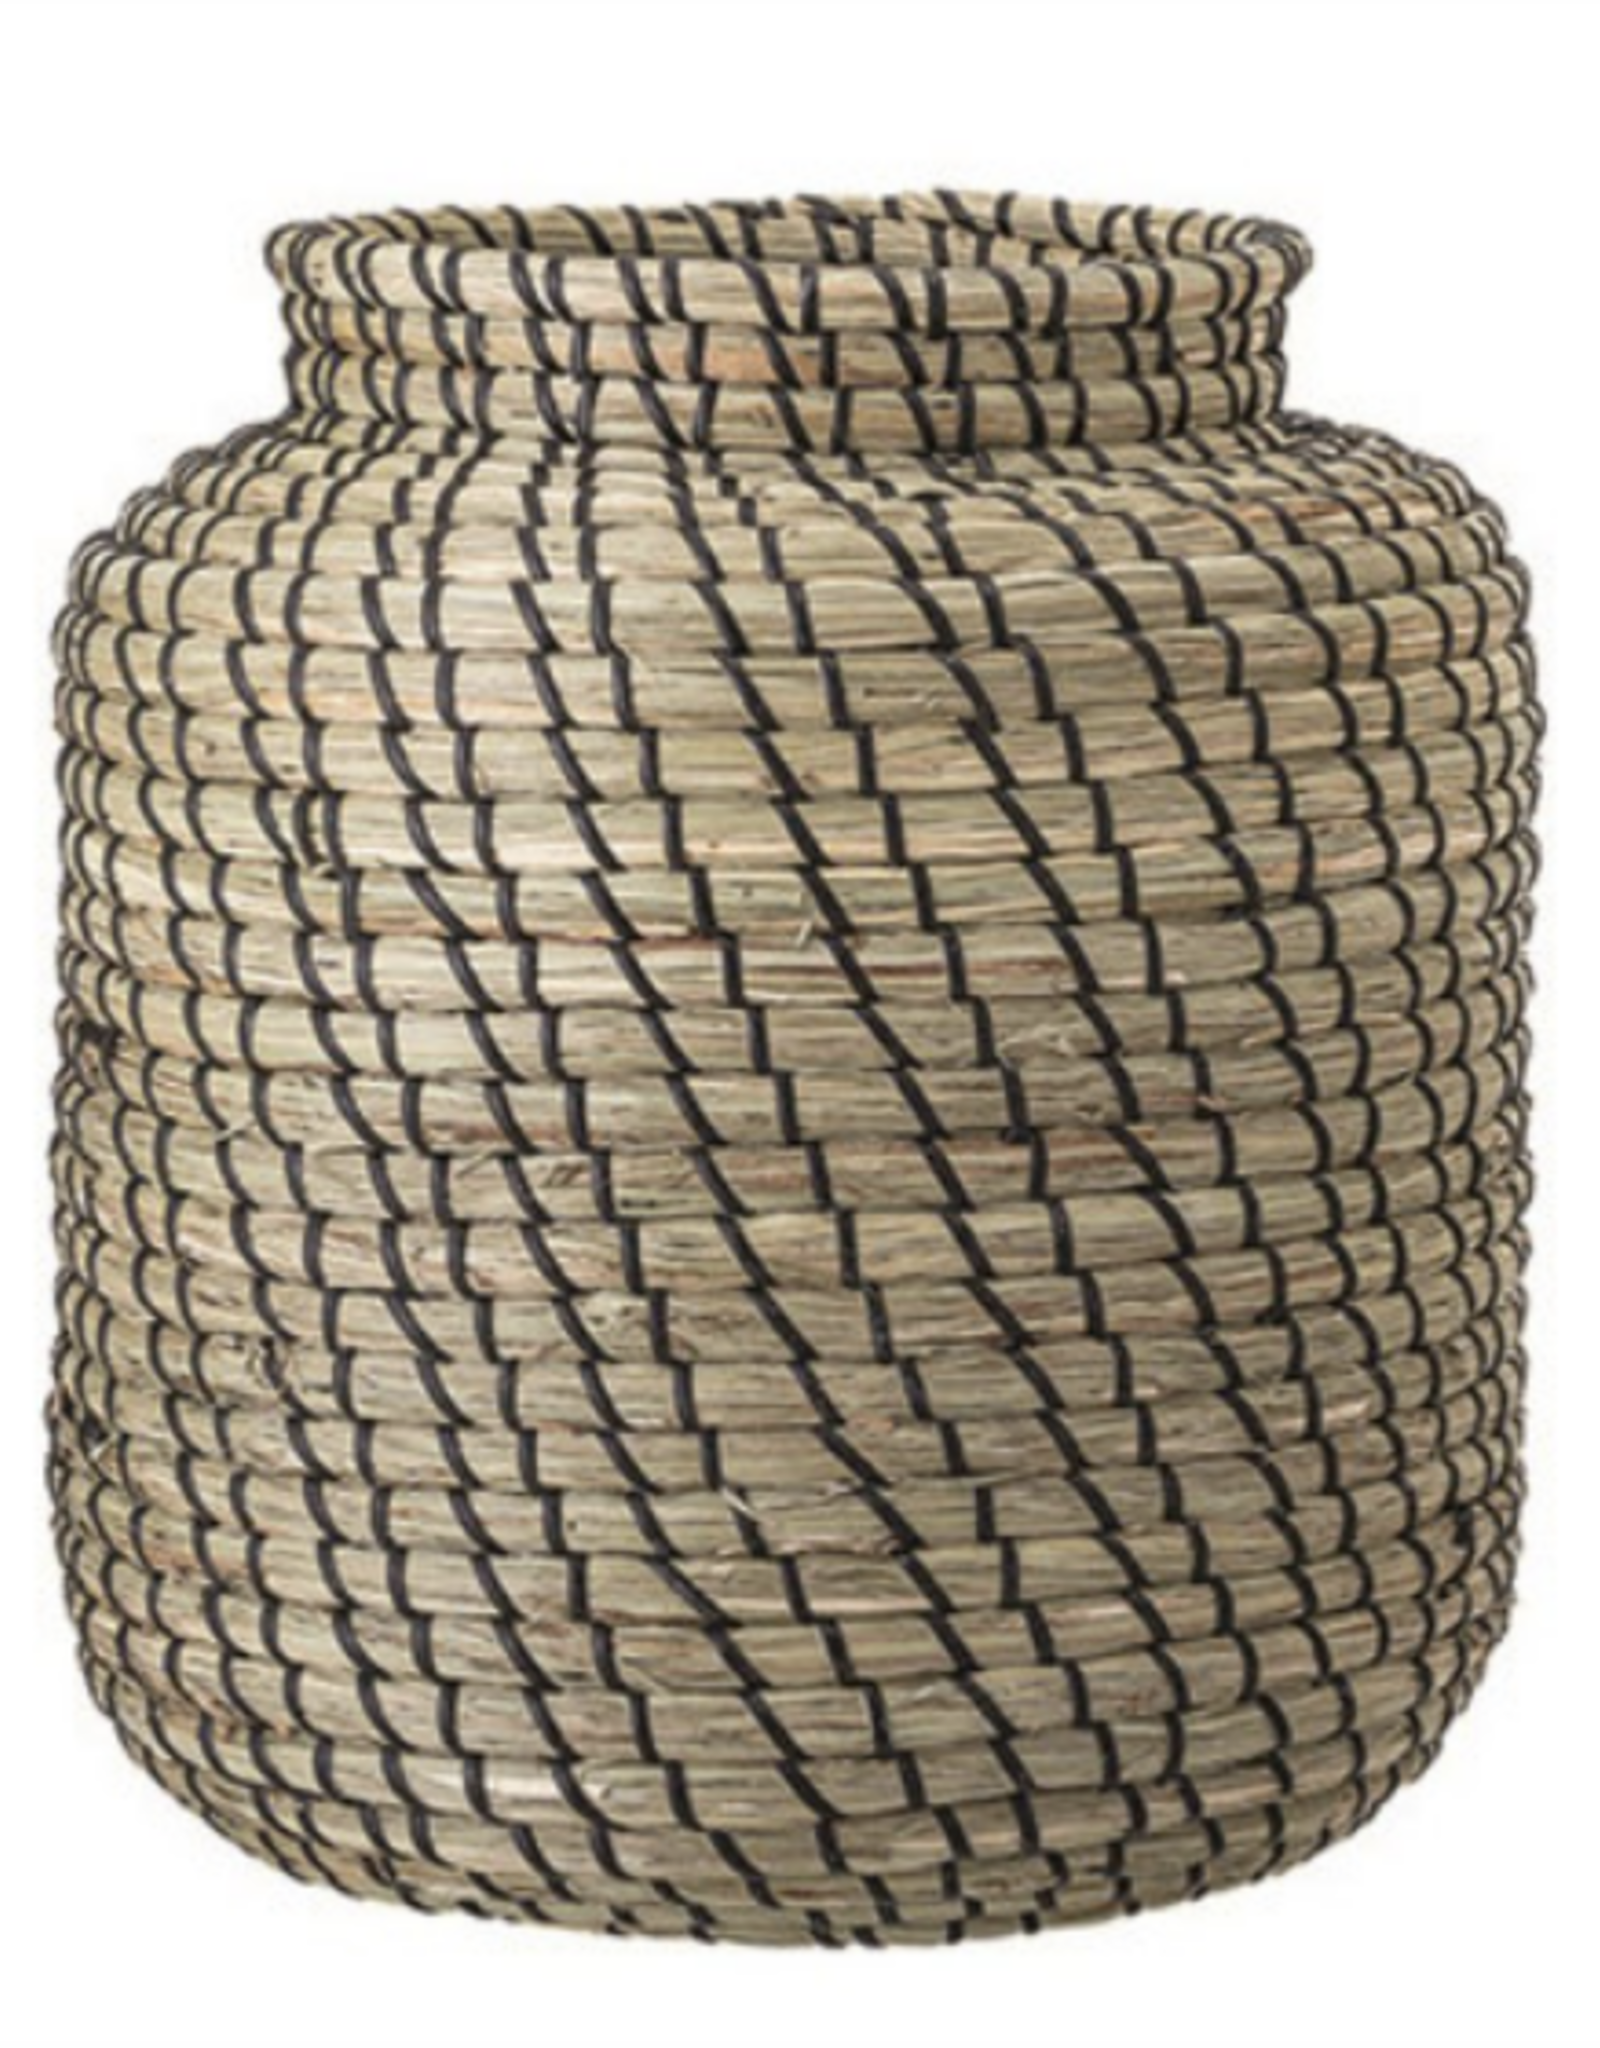 Hand-Woven Seagrass Basket